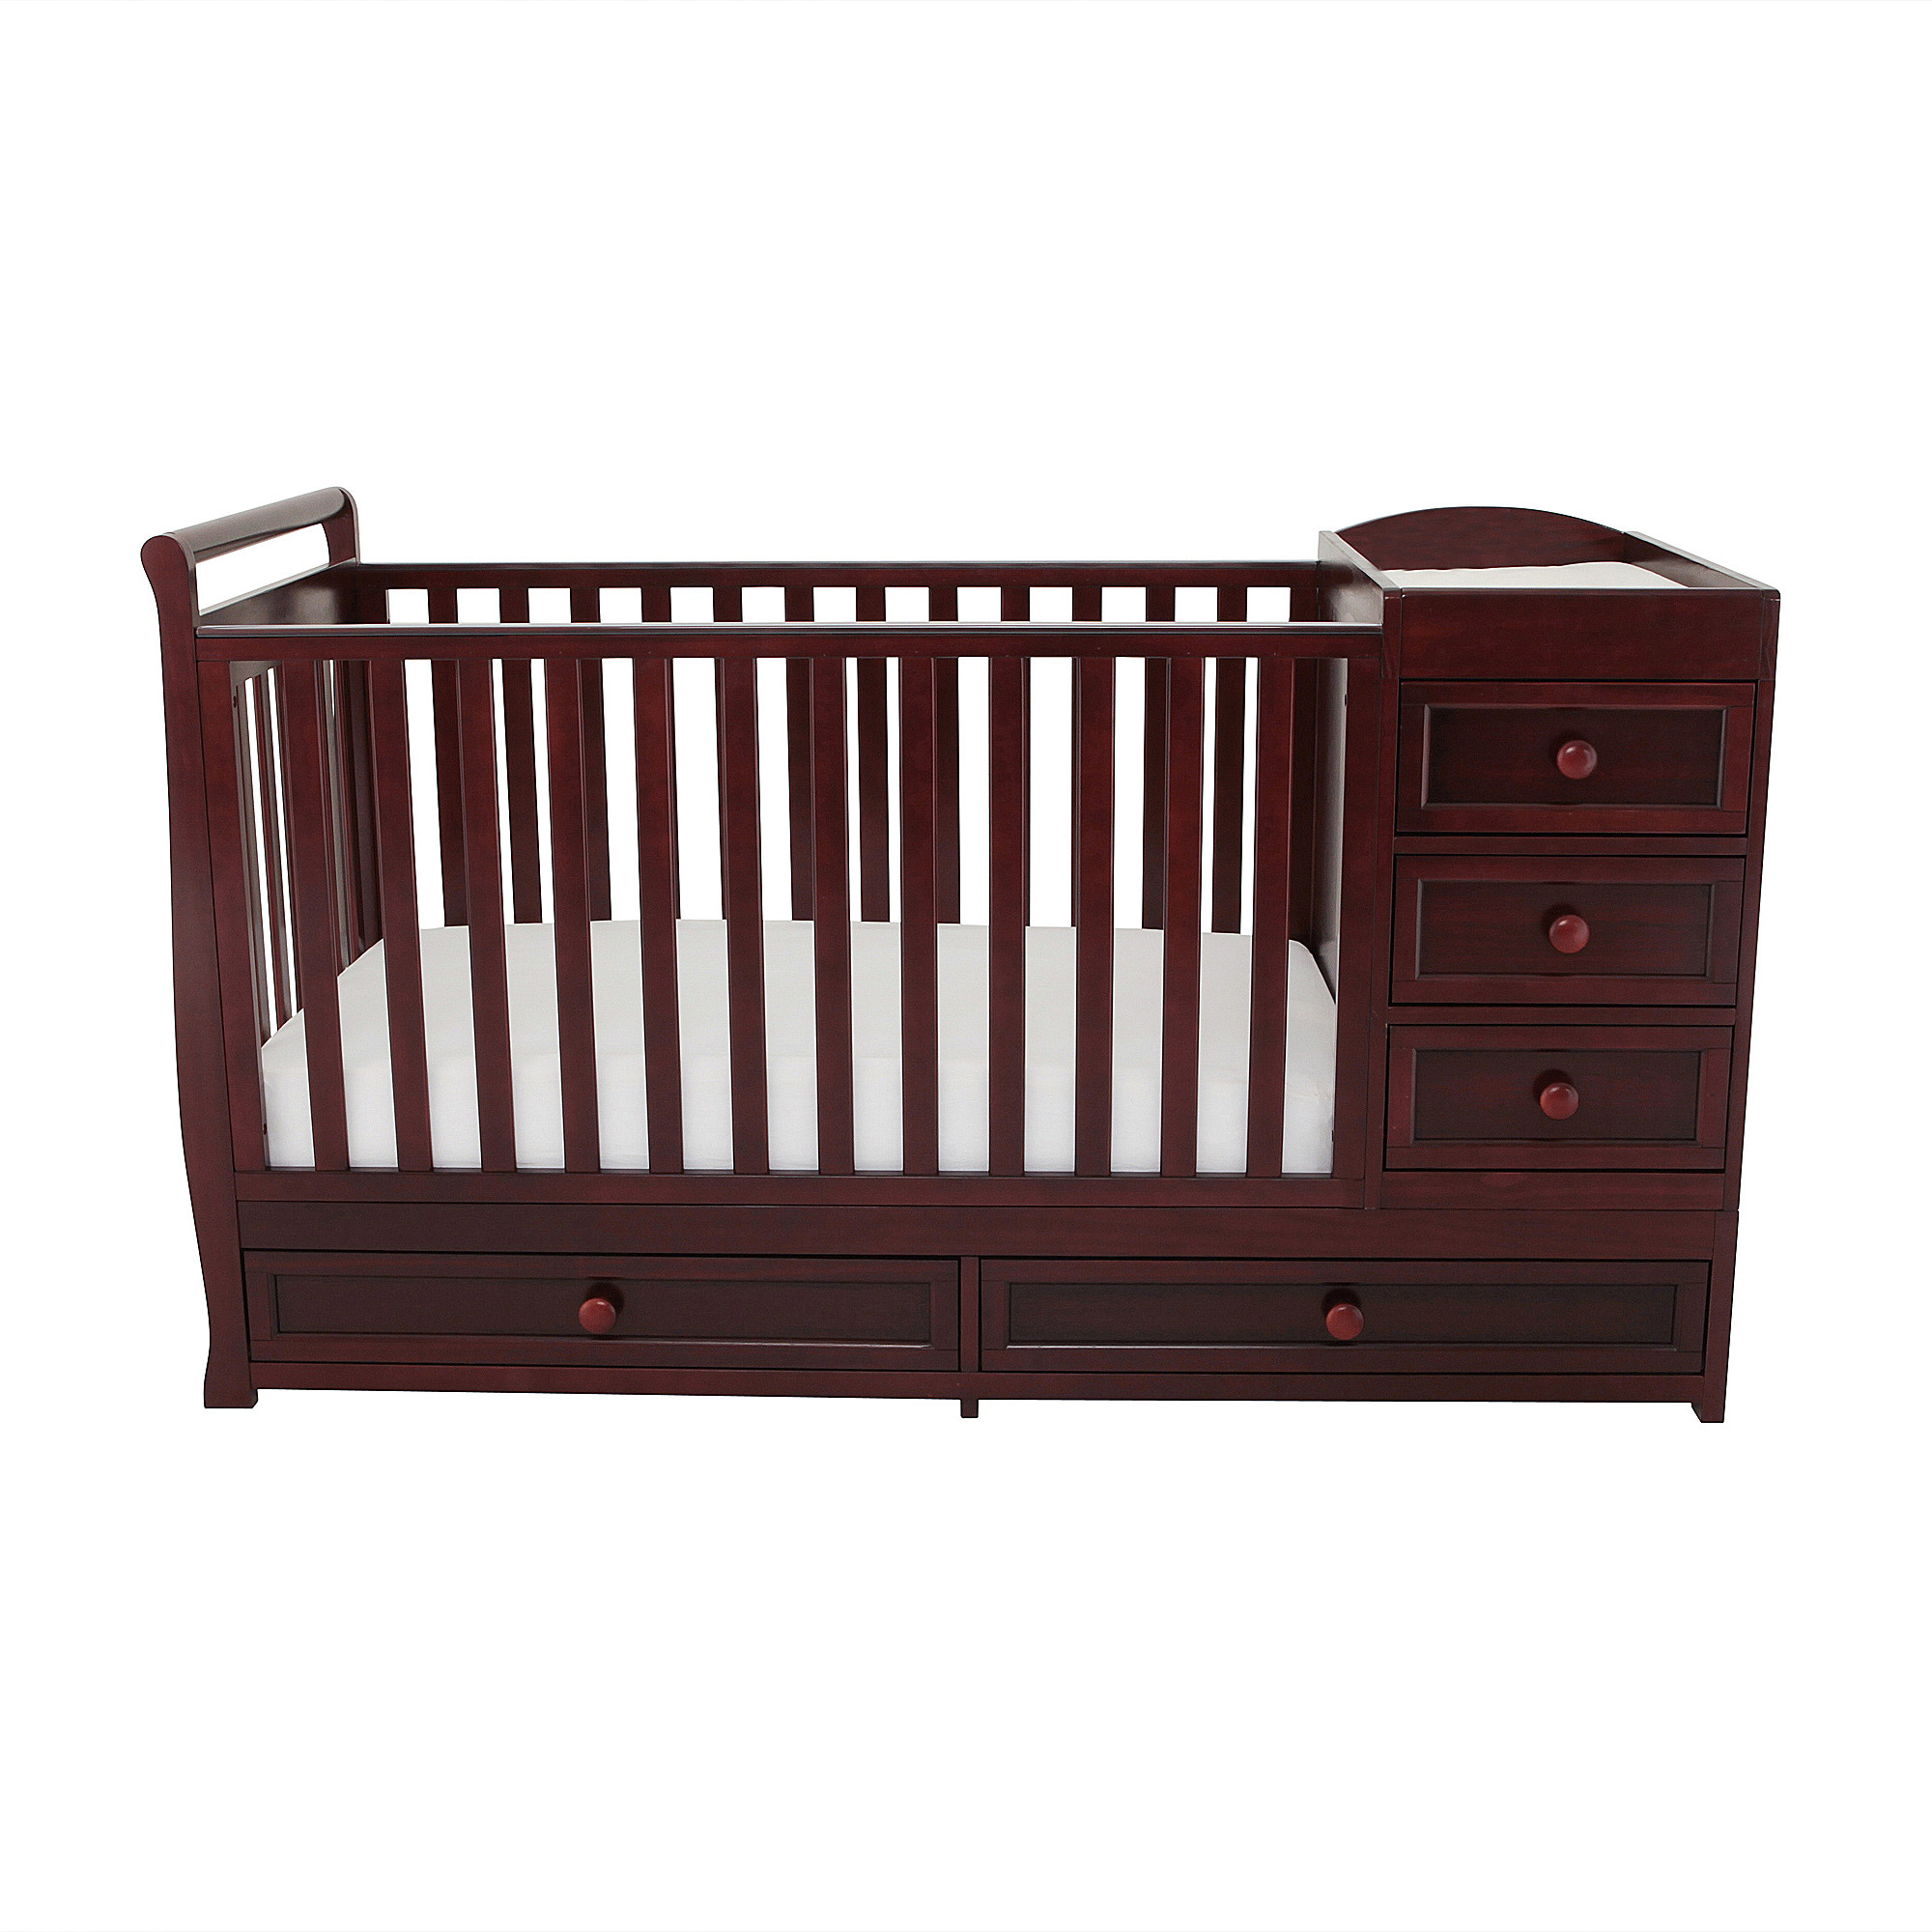 AFG Baby Furniture Daphne 3-in-1 Crib & Changer Combo Cherry